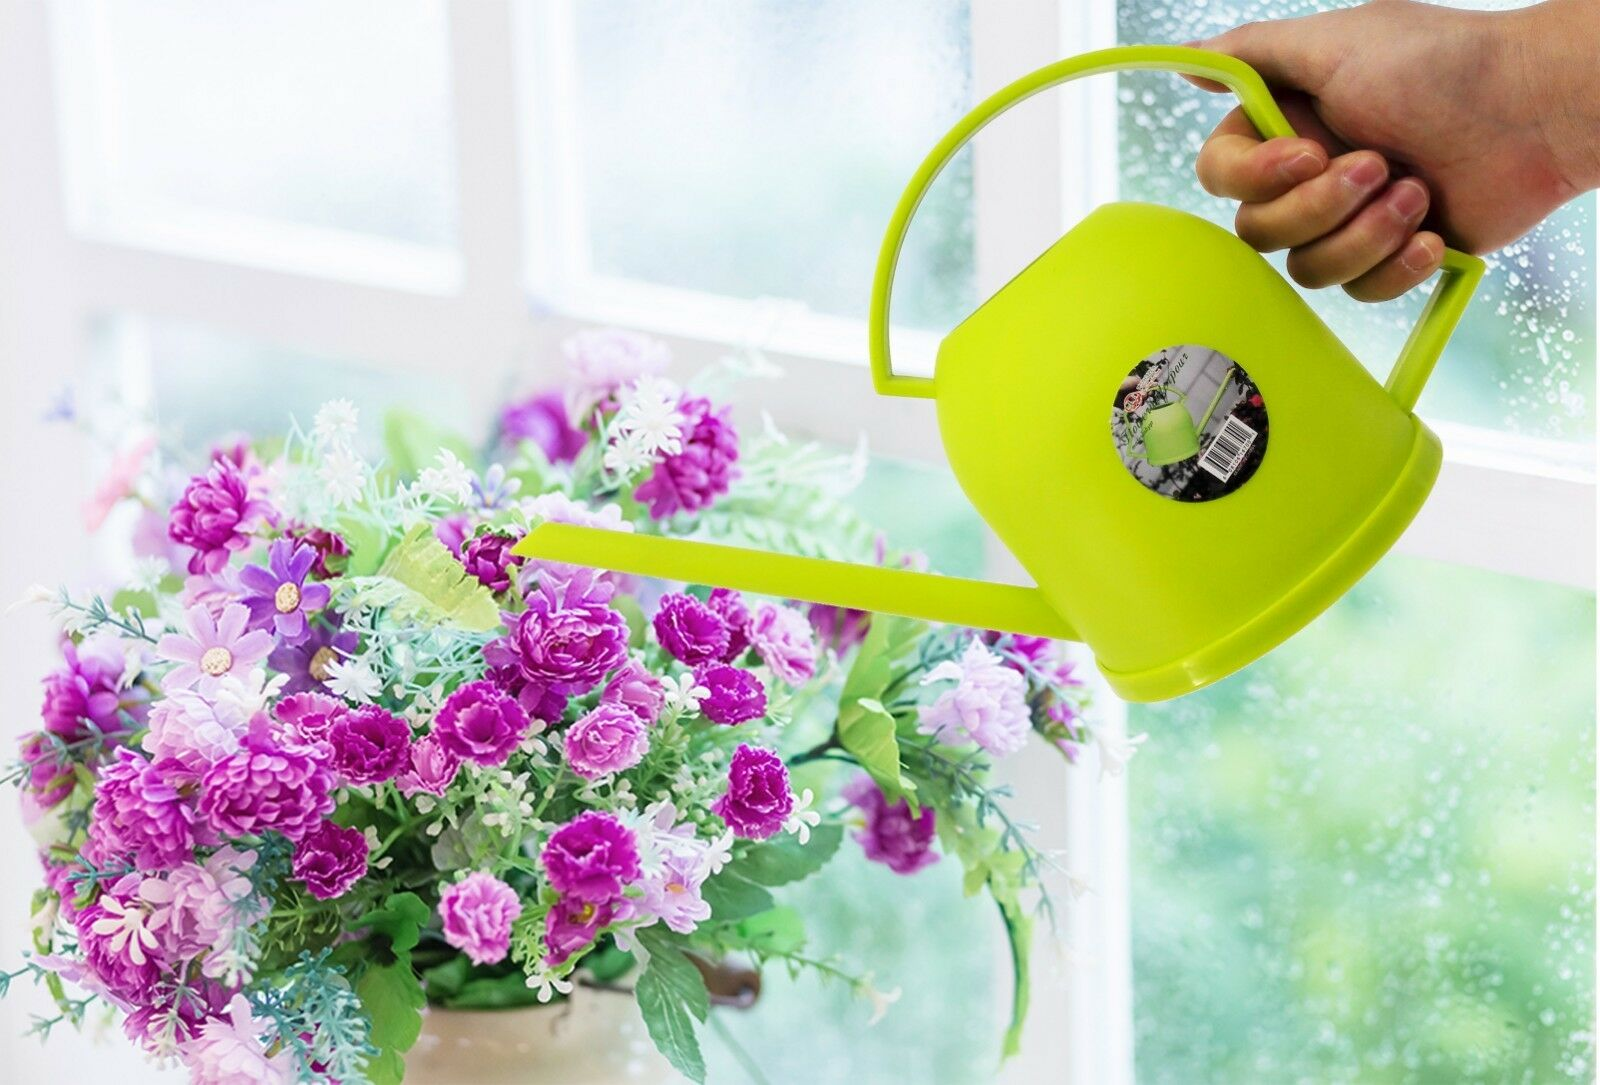 Uniware Flowers Watering Can,Green